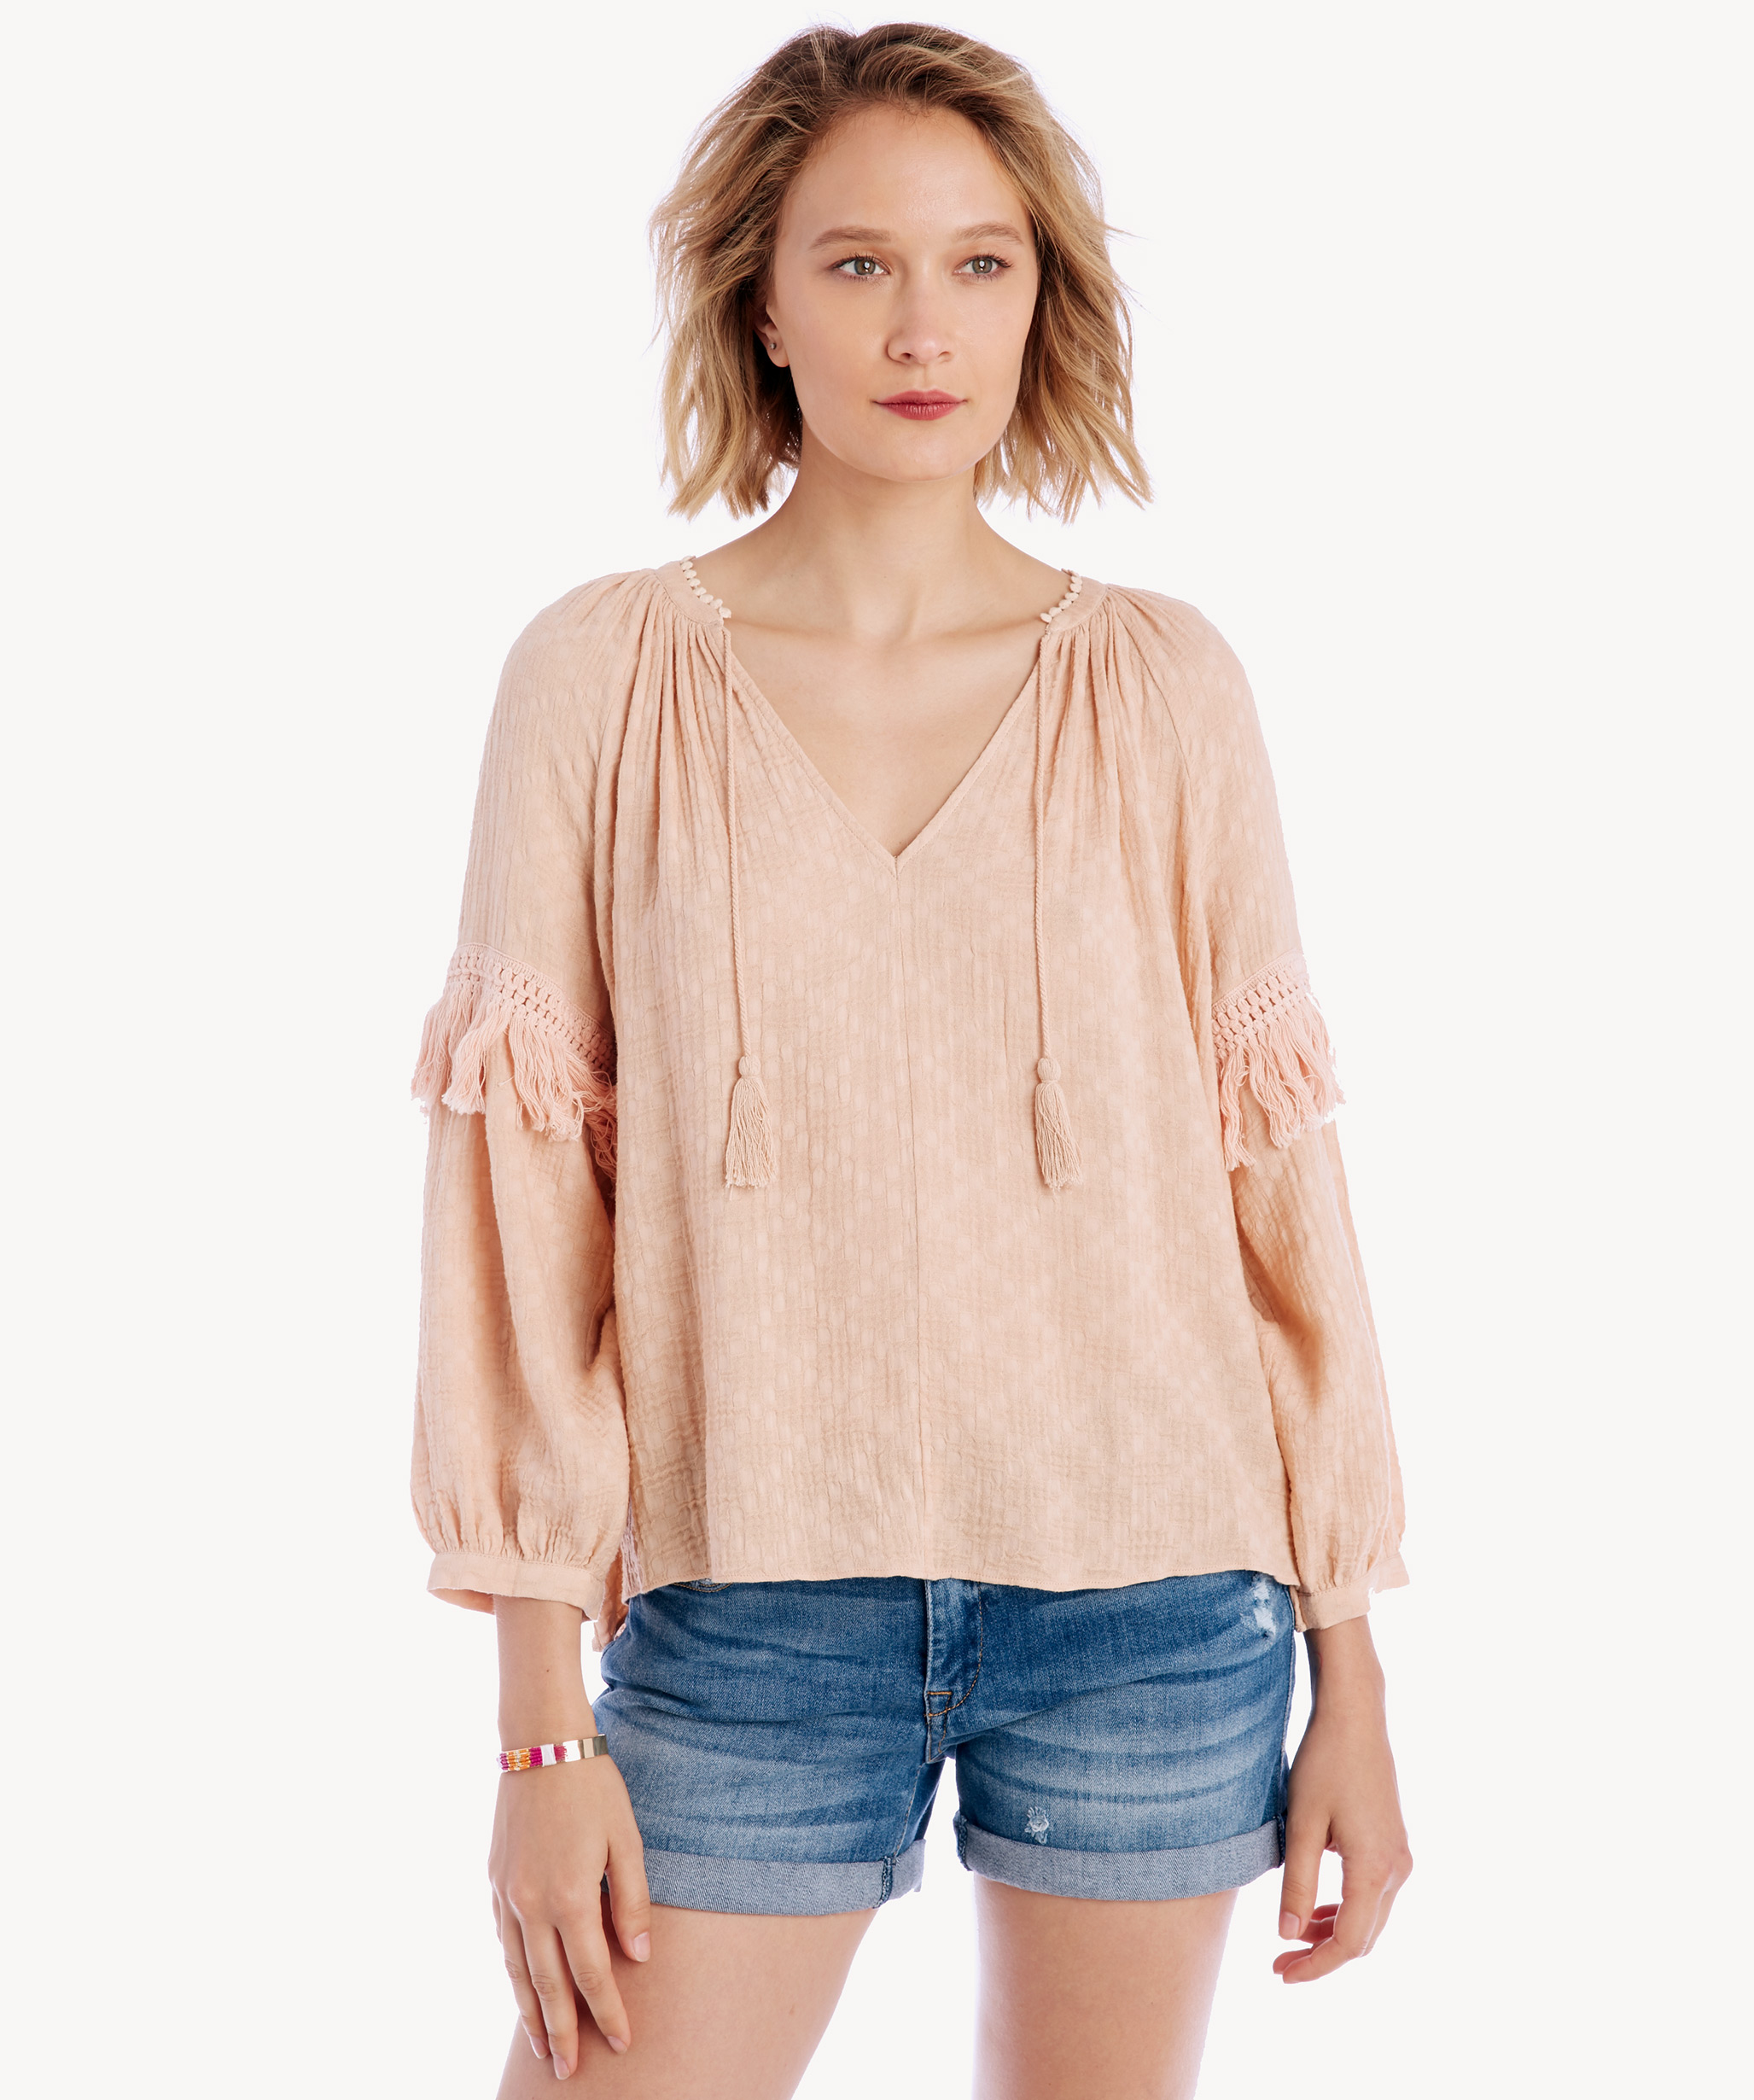 0e539a2bdb1cdd 1. State Women s Split Neck Blouson Sleeve Top With Fringe In Color  Peach  Buff